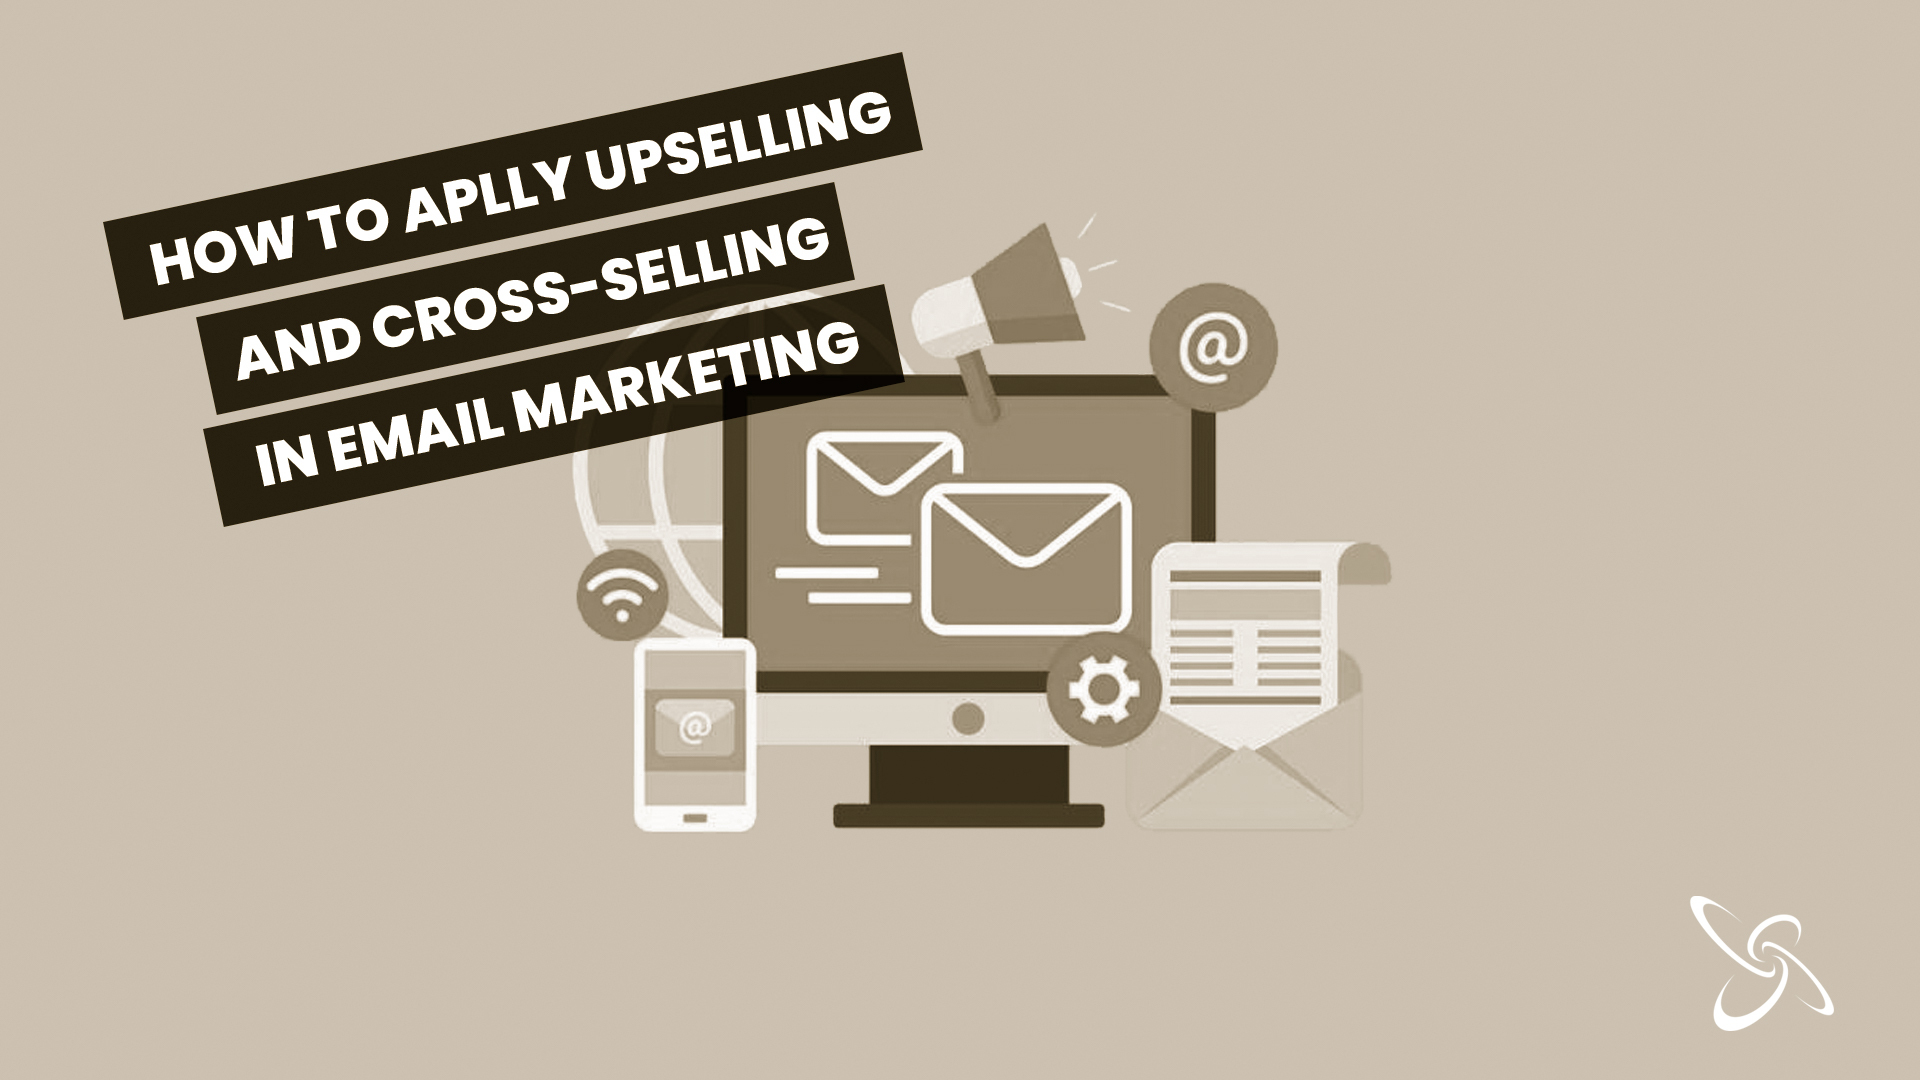 how to apply upselling and cross-selling in email marketing